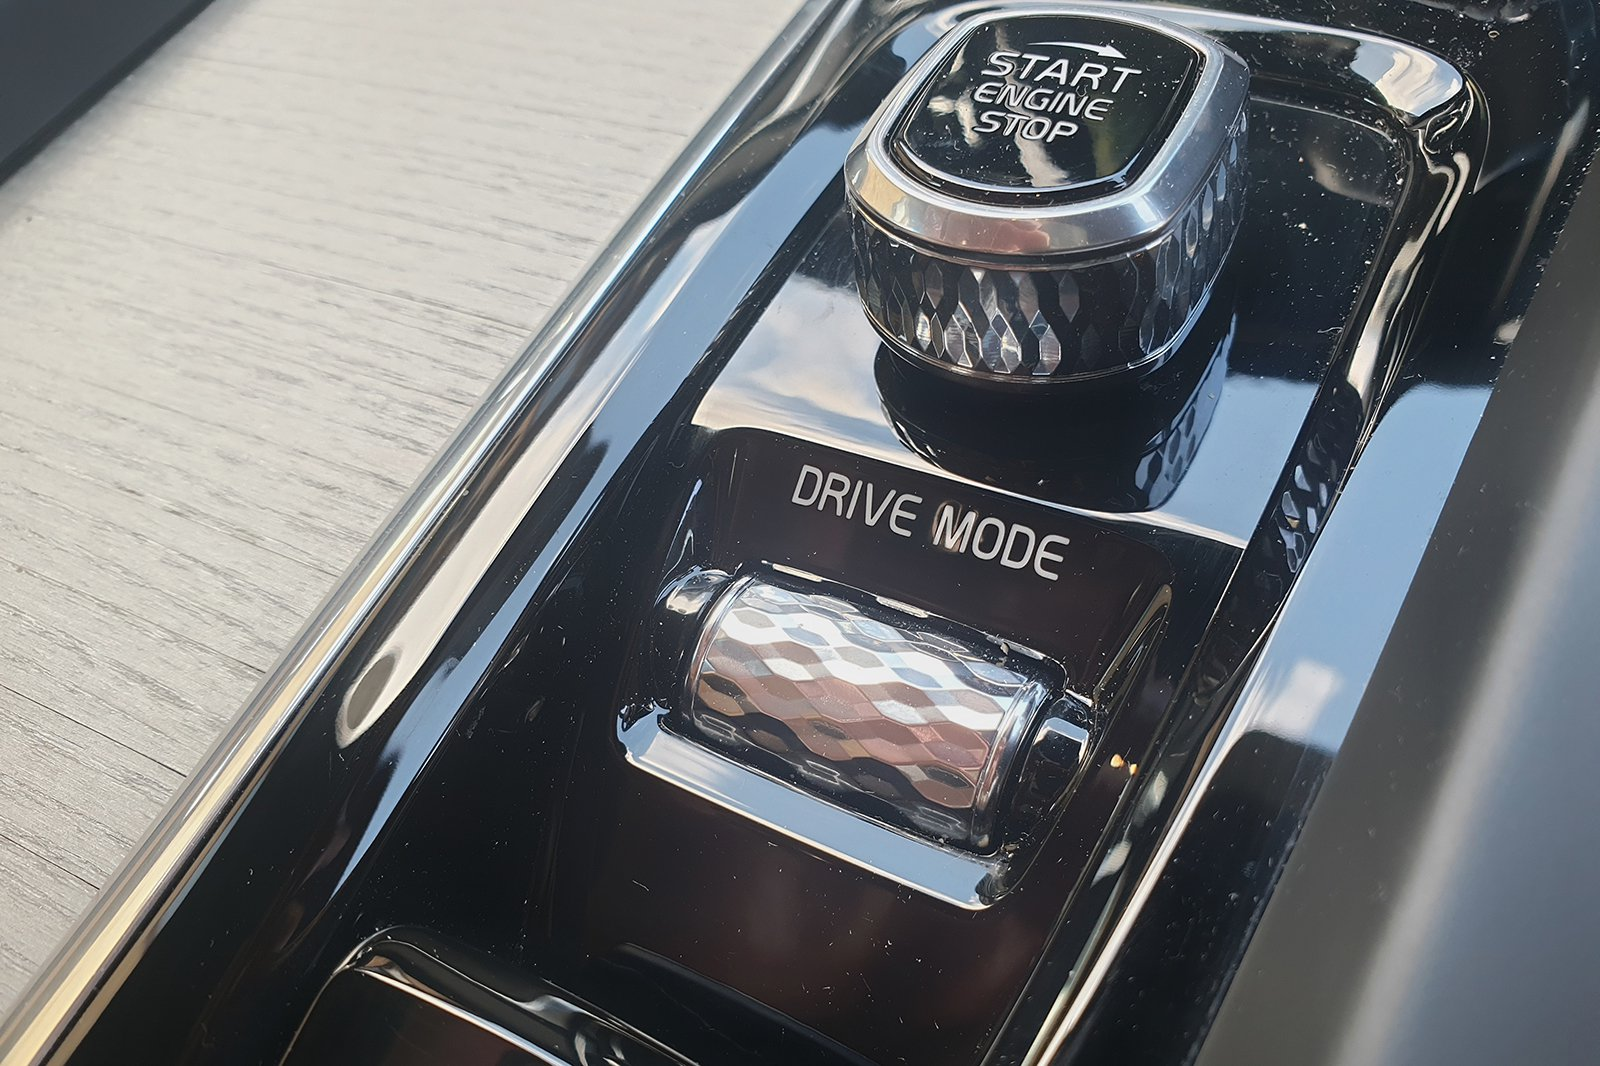 Volvo S60 driving mode control